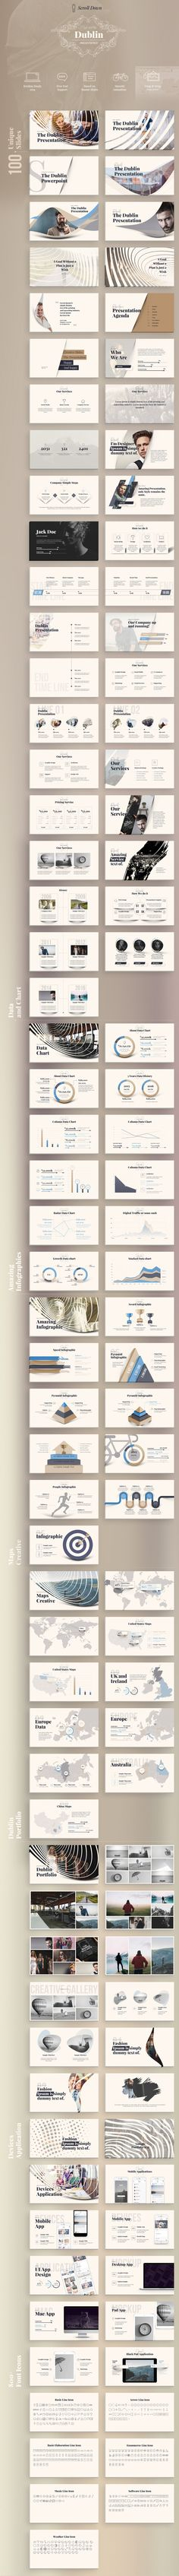 Dublin Powerpoint Presentation by dublin_design on @creativemarket